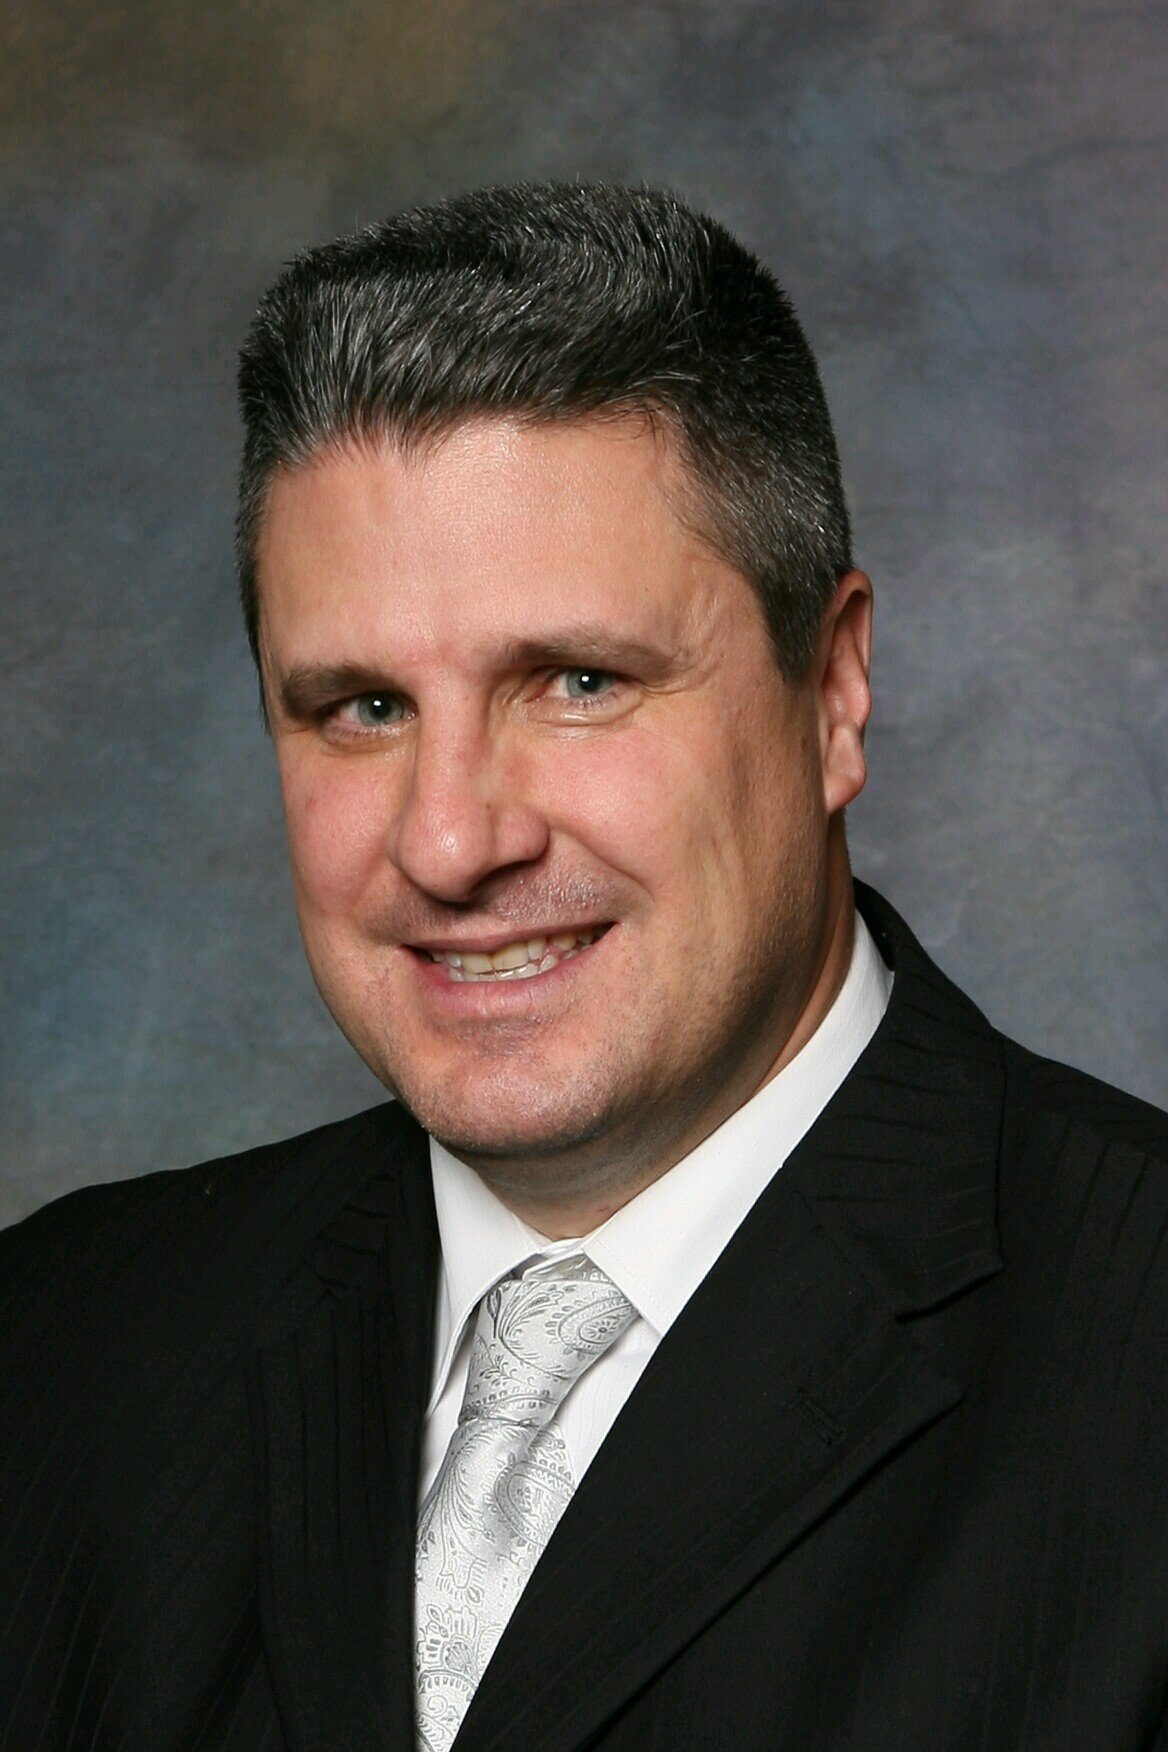 JOHN (JR) RICKERT - JR is the President and founder of JR Sports Enterprises. Originally from New Jersey, JR now makes his home in upstate New York. He has been recognized by the Stanford Corporation as one of the most successful entrepreneurs in the country and as one of the most accomplished individuals under the age of 40 by the Albany Business Review. Now, with a 20-year track record in negotiations, JR has successfully negotiated more than $500 million in professional contracts and endorsements. JR prides himself on a level of service and personal touch for each and every client that he and his team represent. JR is one of the very few agents in the entire country who had an active client in the NFL, MLB, and NBA in the same year. JR has successfully negotiated over 50 rookie contracts in the NFL, Major League Baseball and Professional Basketball Leagues, as well as over 250 professional sports contracts.